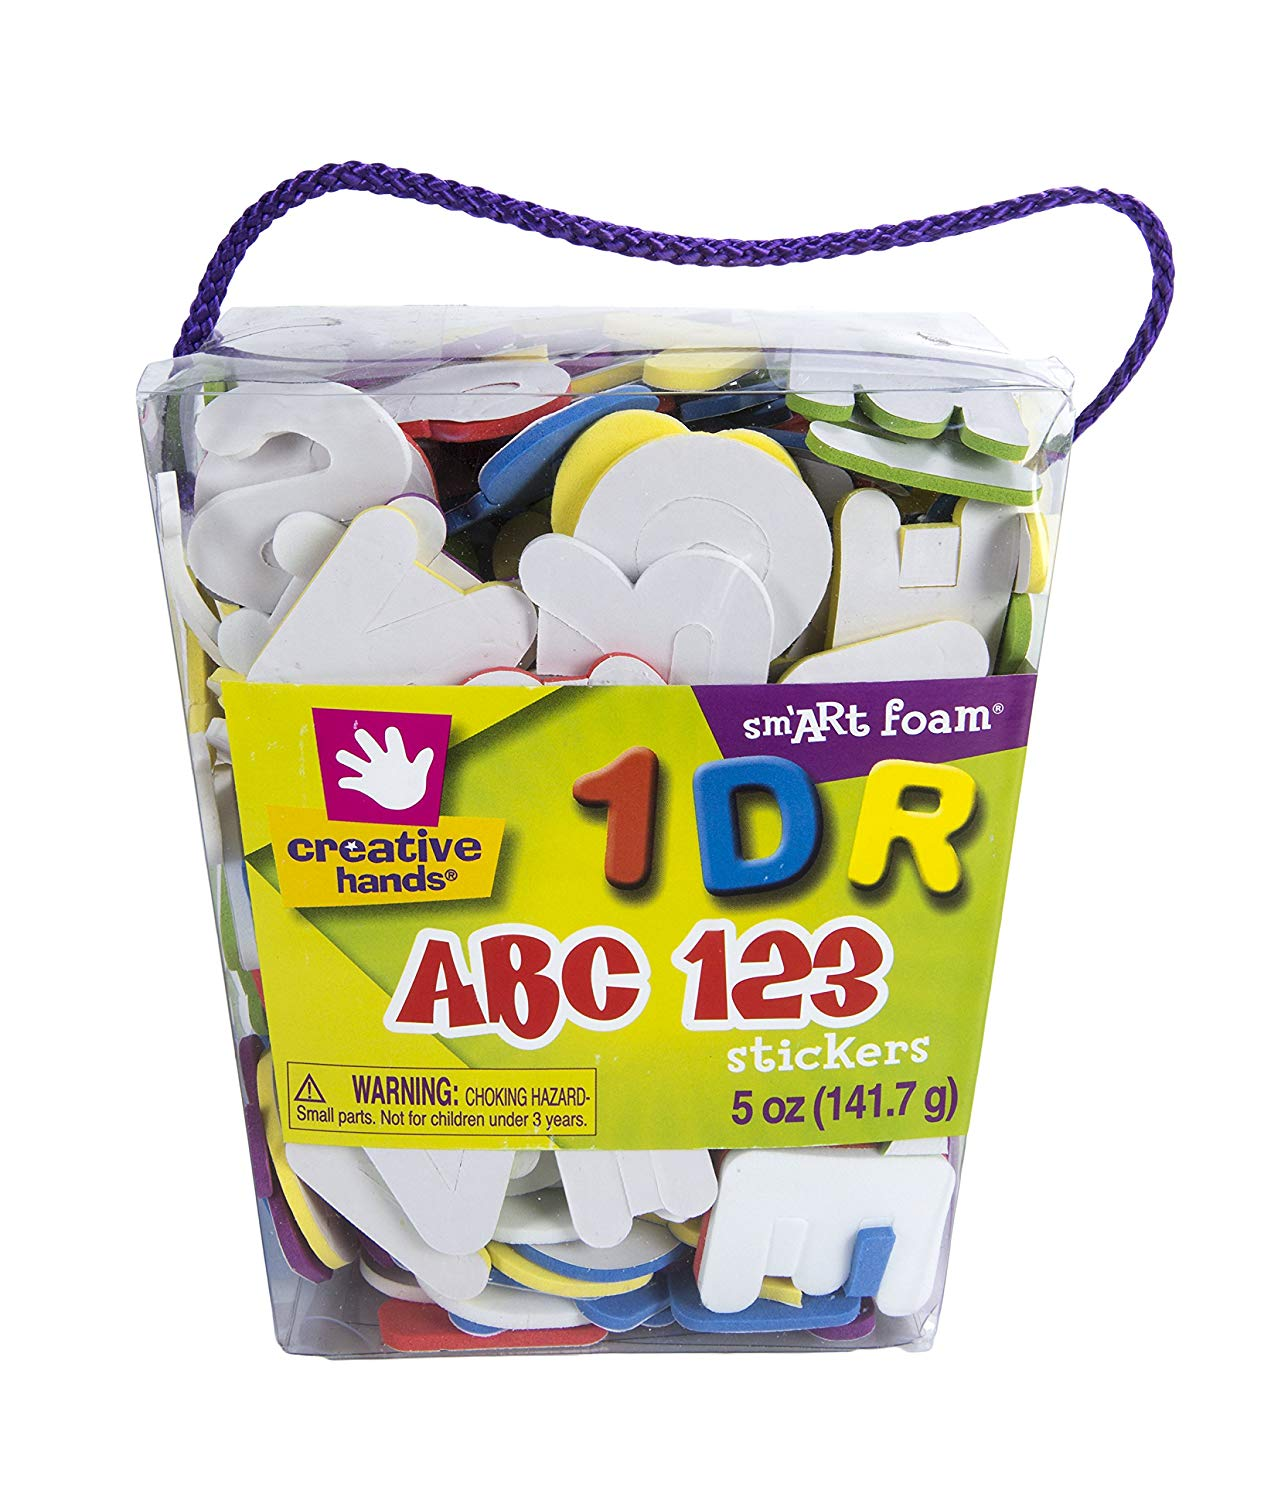 Fibre-Craft Foam Stickers, 6-Ounce, Self-Adhesive Letters and Numbers